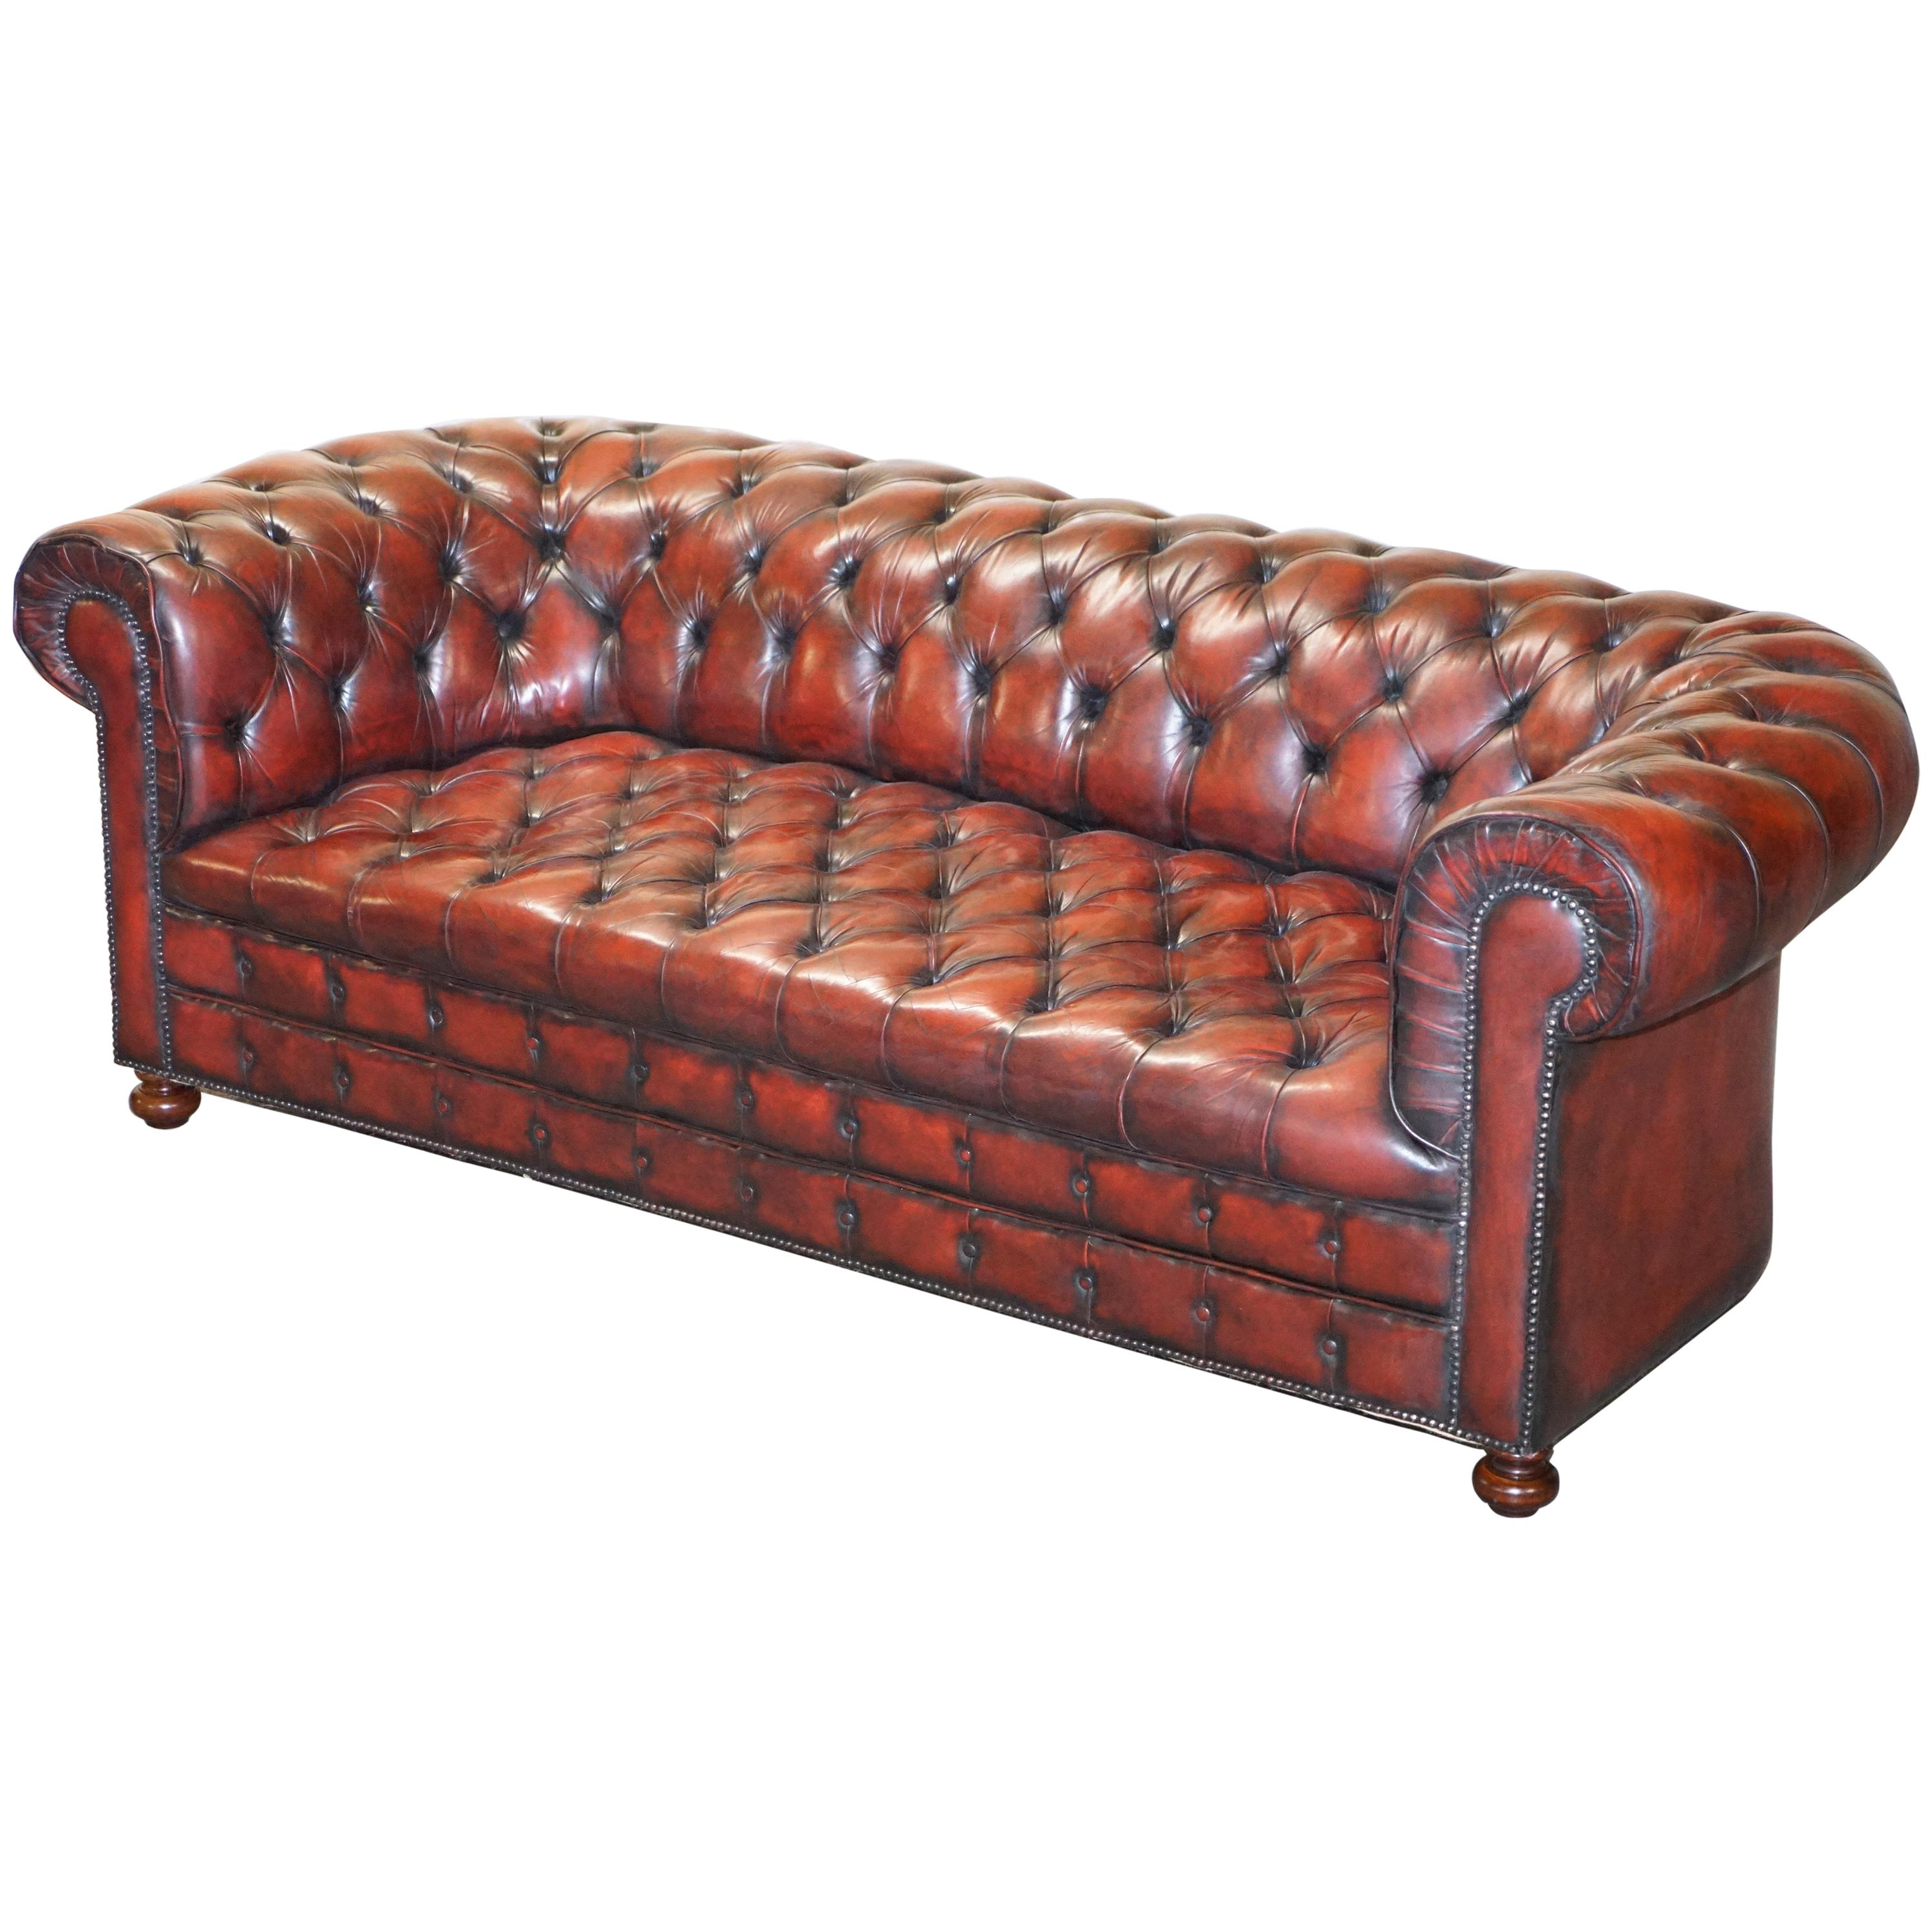 Fully Restored Hand Dyed Oxblood Leather Fully Tufted Chesterfield Buttoned Sofa